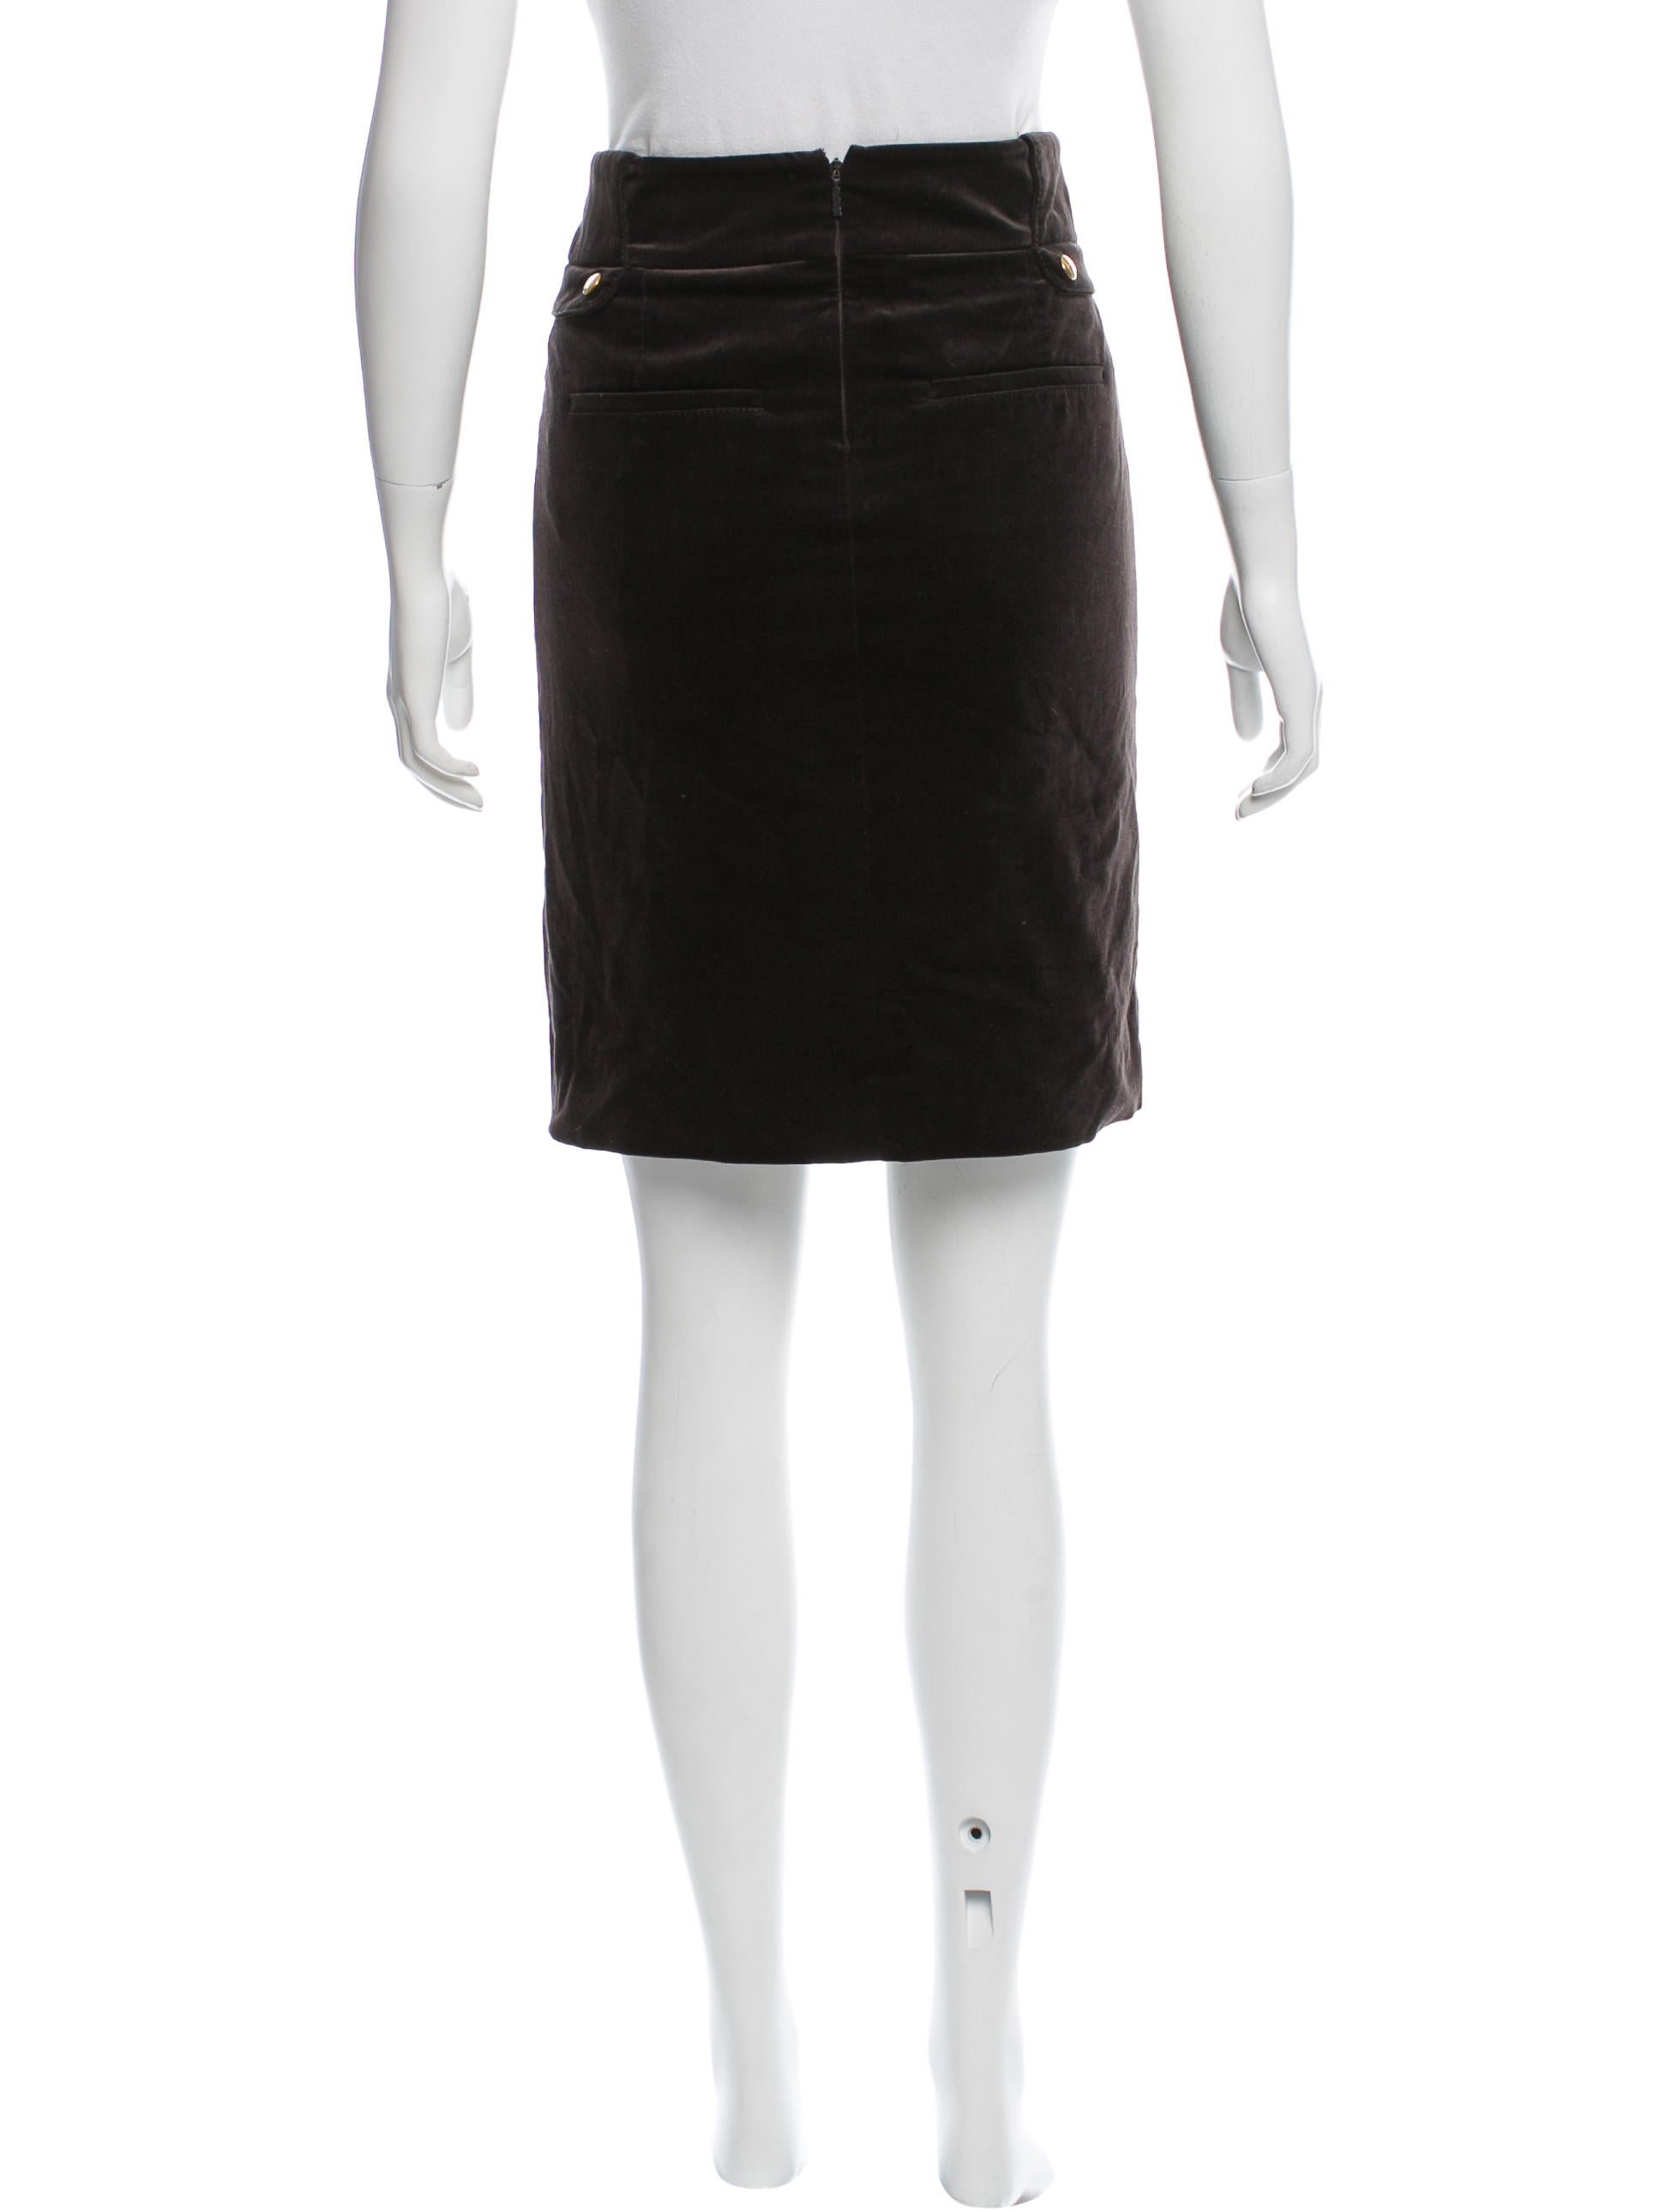 Gucci Velvet Pencil Skirt - Clothing - GUC122301 | The RealReal